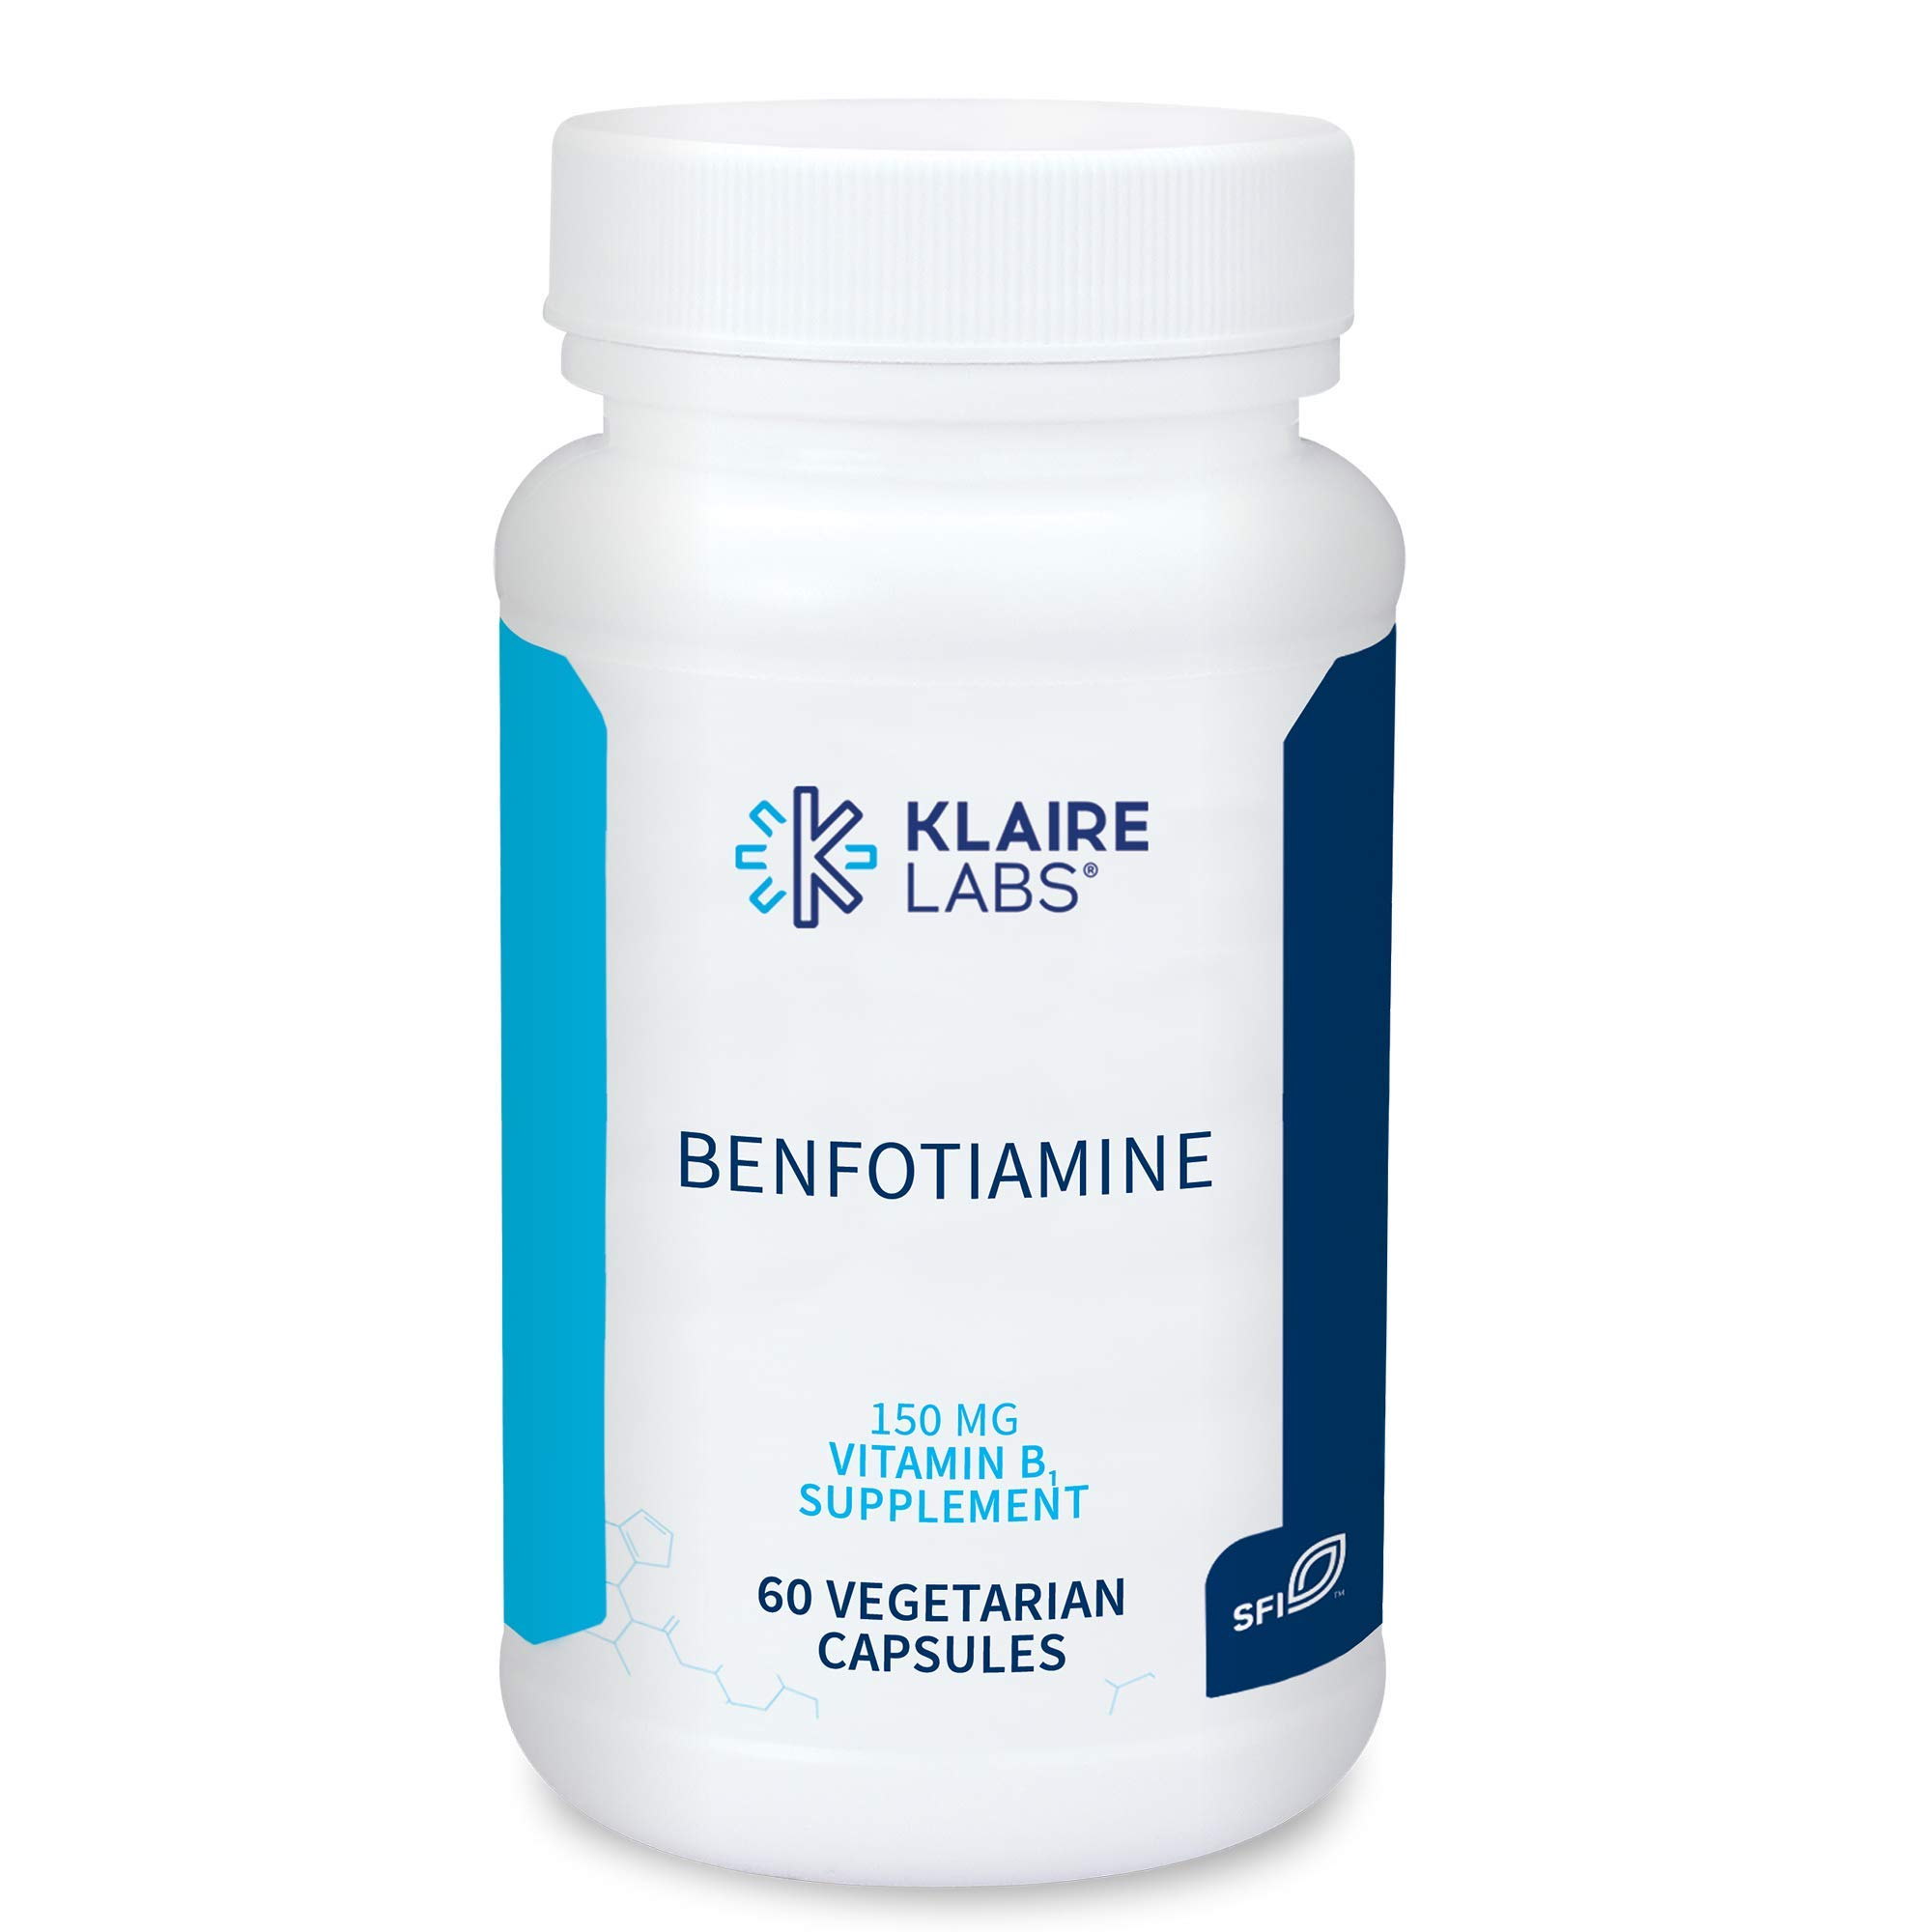 Klaire Labs Vitamin B1 150 mg - Benfotiamine Supplement for Men and Women - Fat-Soluble Thiamine for Improved Absorption - Helps Maintain Healthy Glucose Metabolism - Hypoallergenic (60 Capsules)